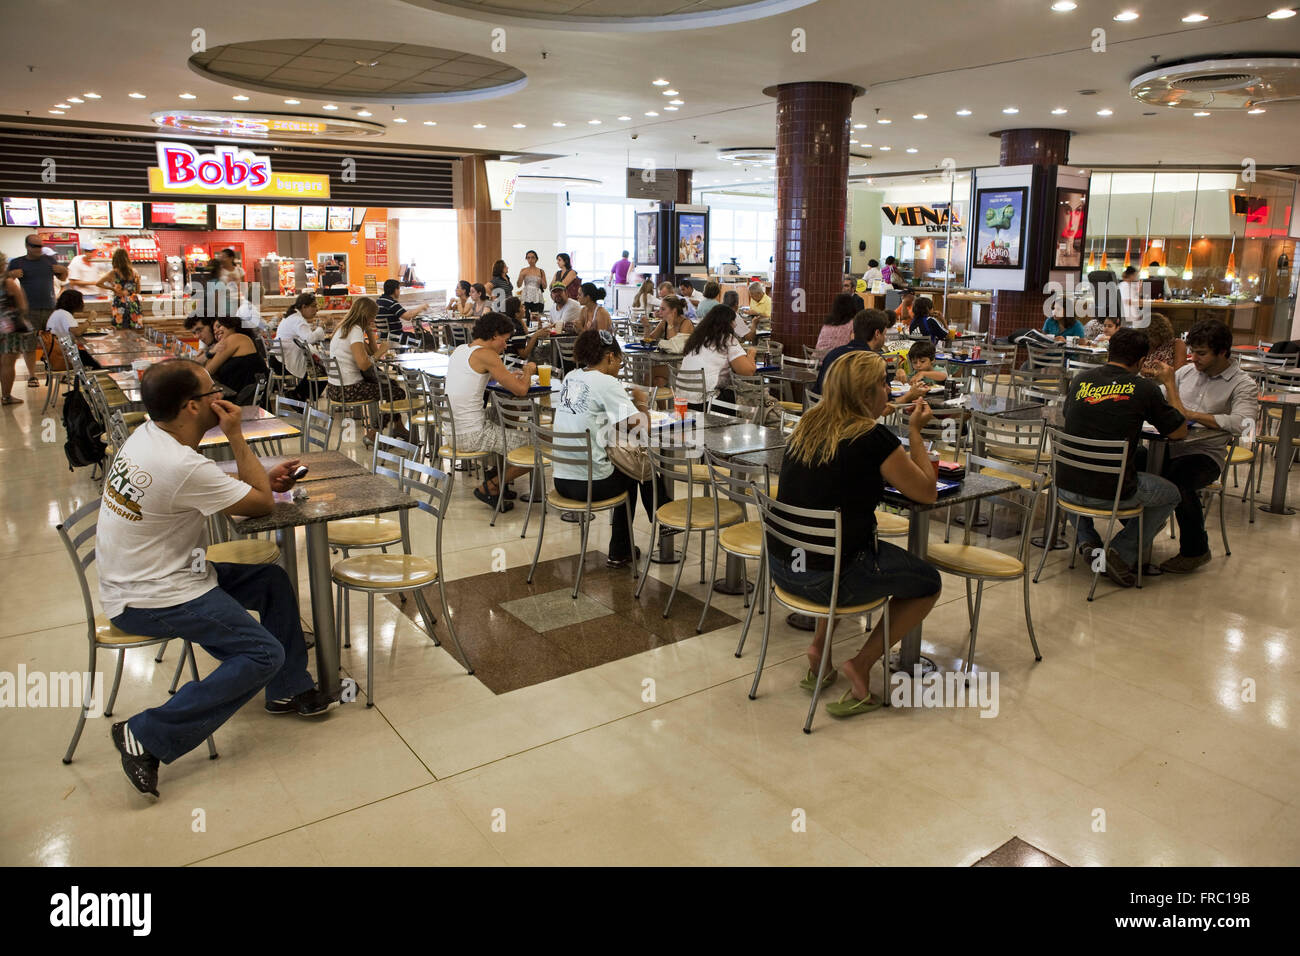 Food court in shopping mall in Botafogo neighborhood - south of the city of Rio de Janeiro - Stock Image